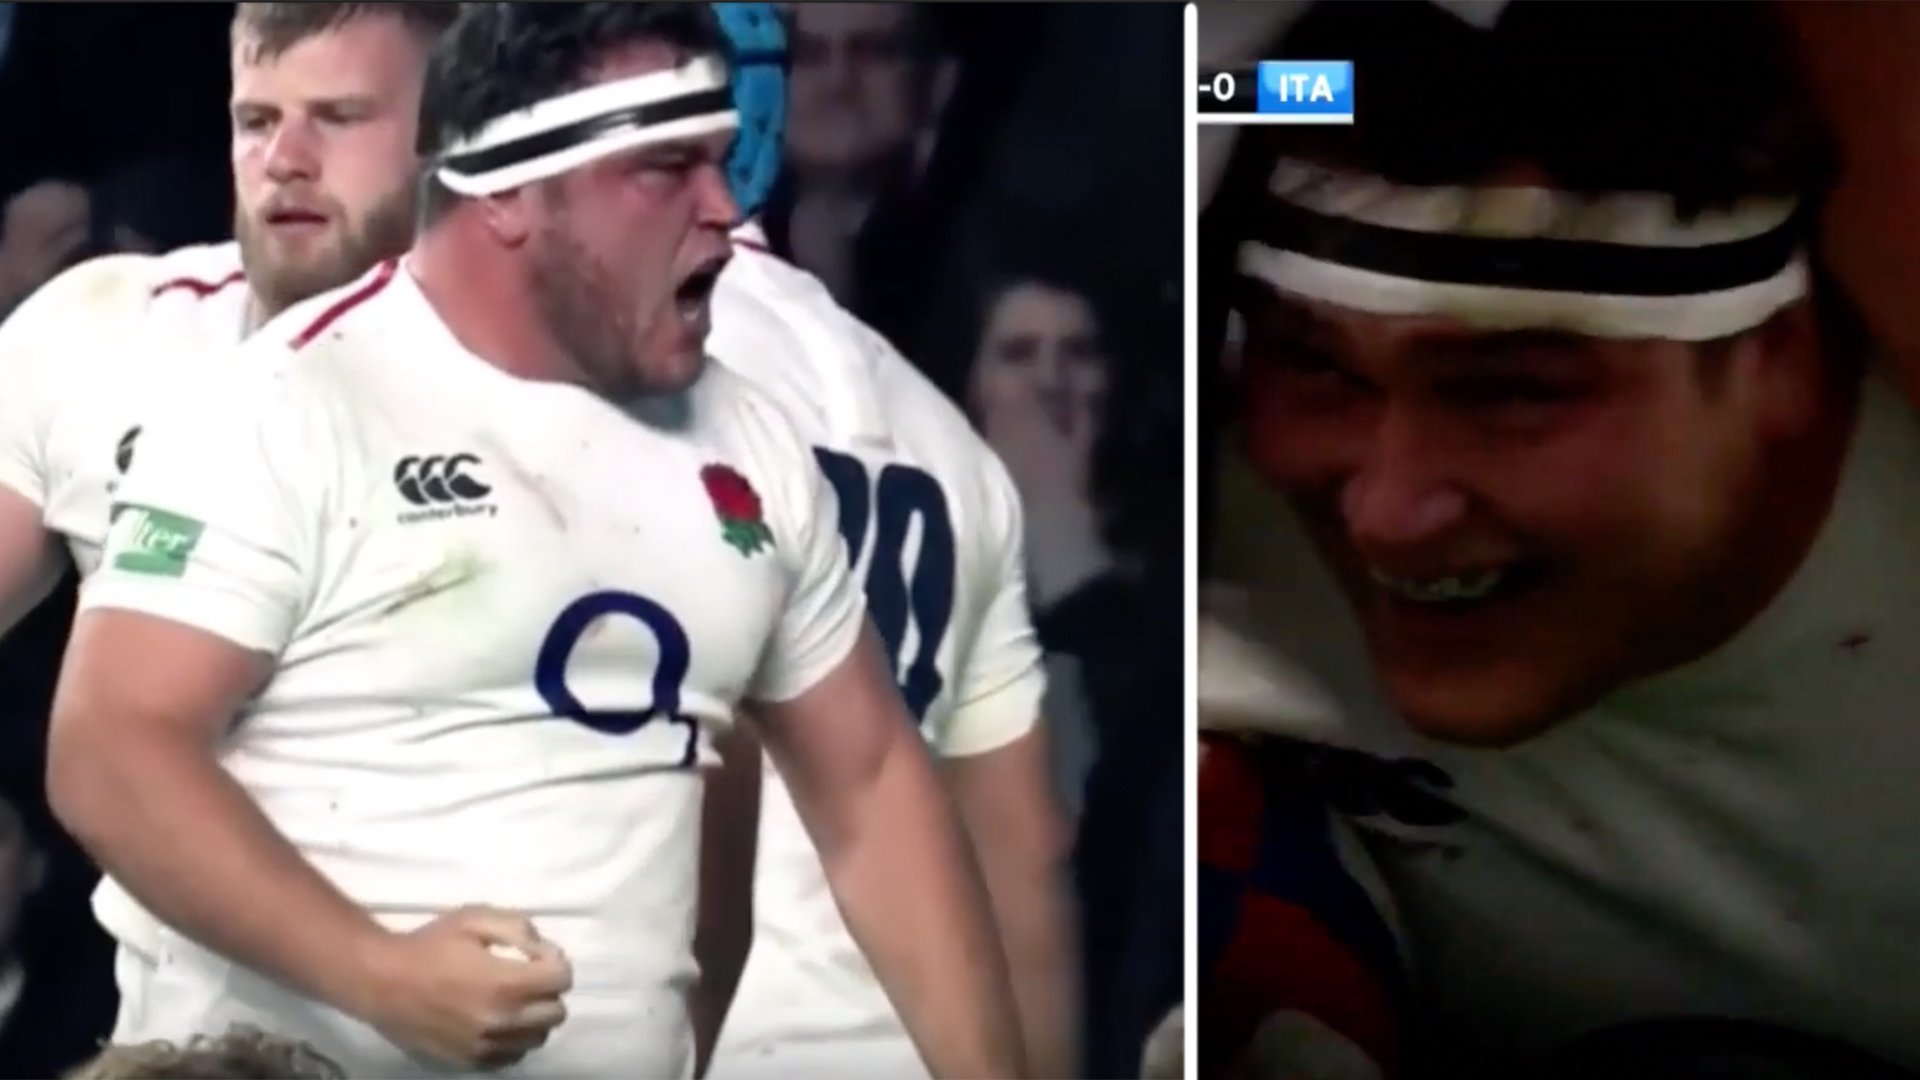 Every forward in rugby should aim to be like England hooker Jamie George